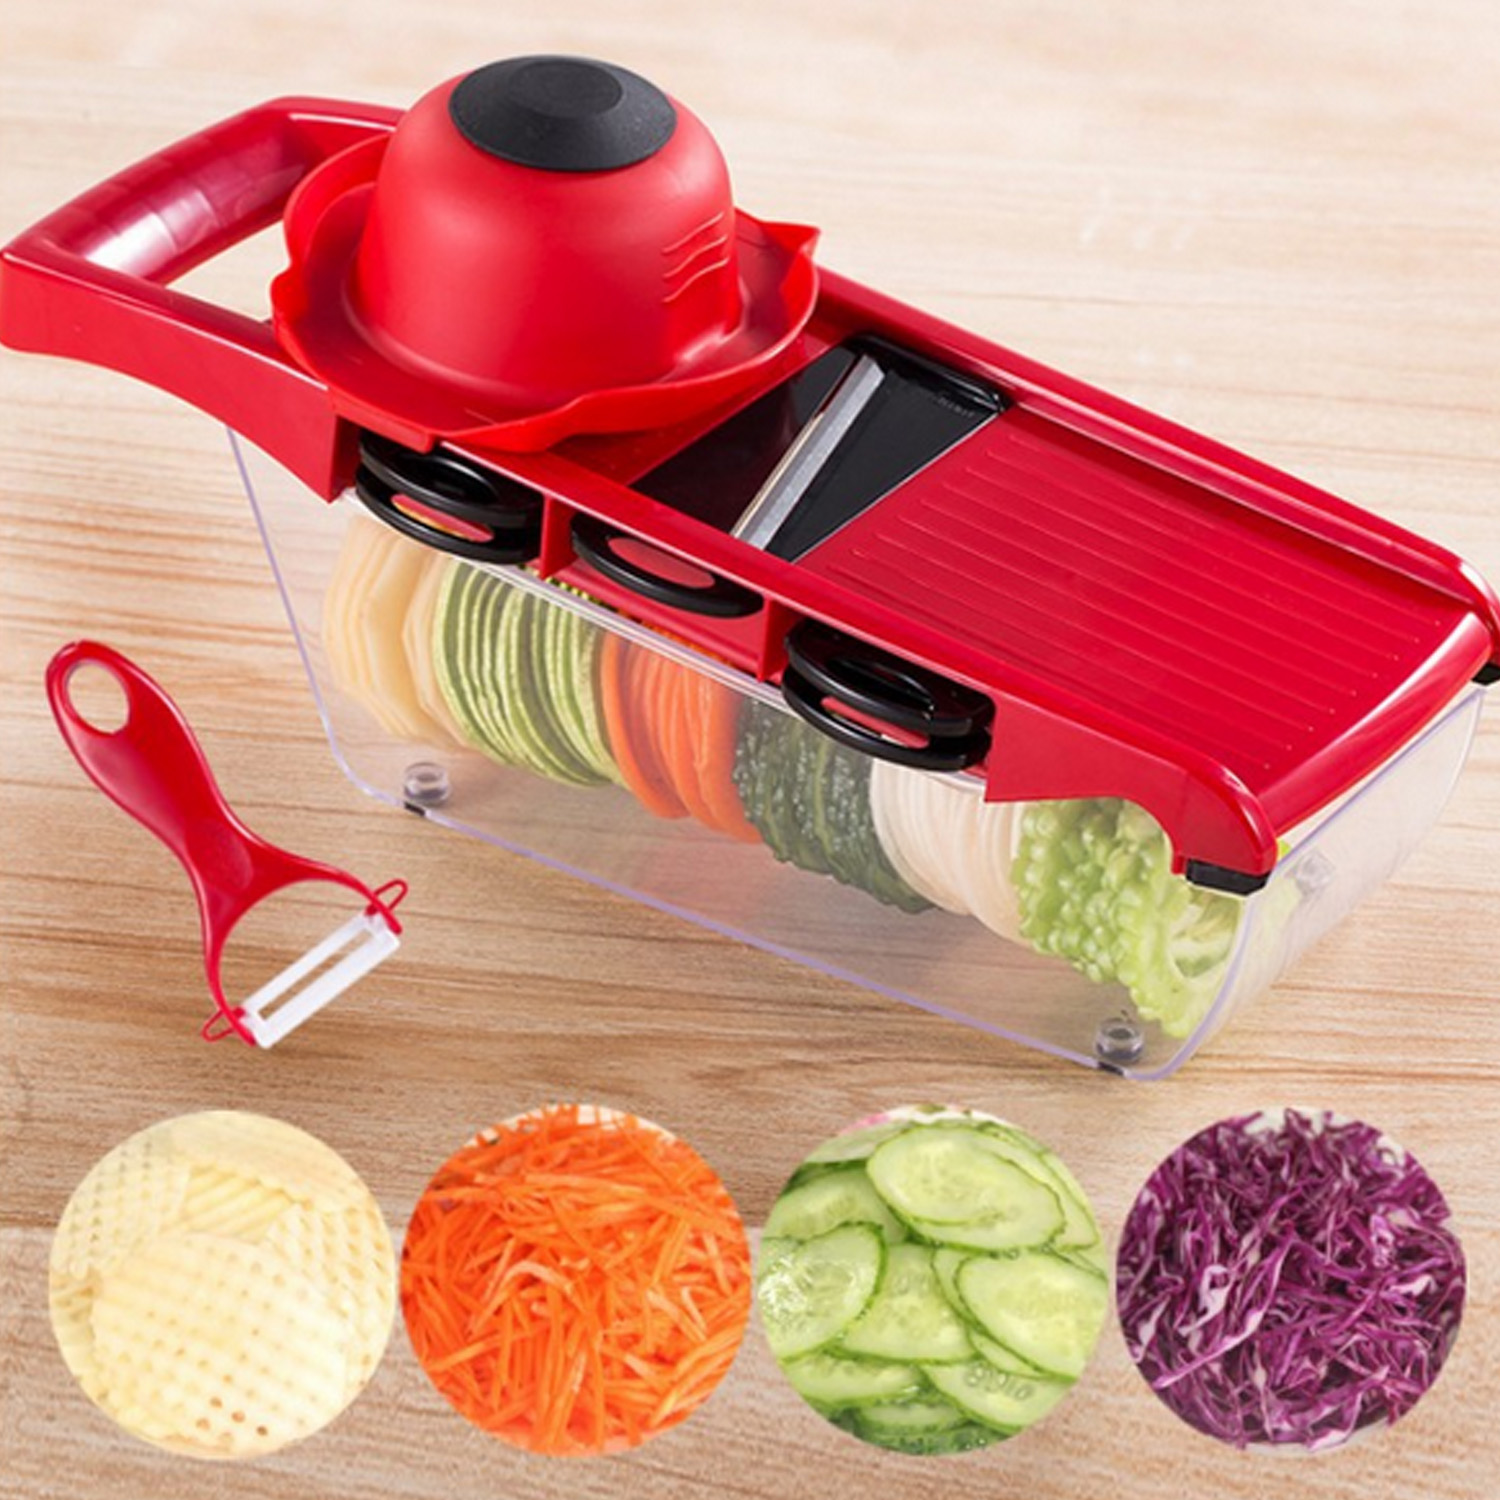 Kitchen Tools & Gadgets Kitchen, Dining & Bar Ceramic Peeler Fruit Vegetable Carrot Potato Spud Speed Slicer Cutter Helper In Pain